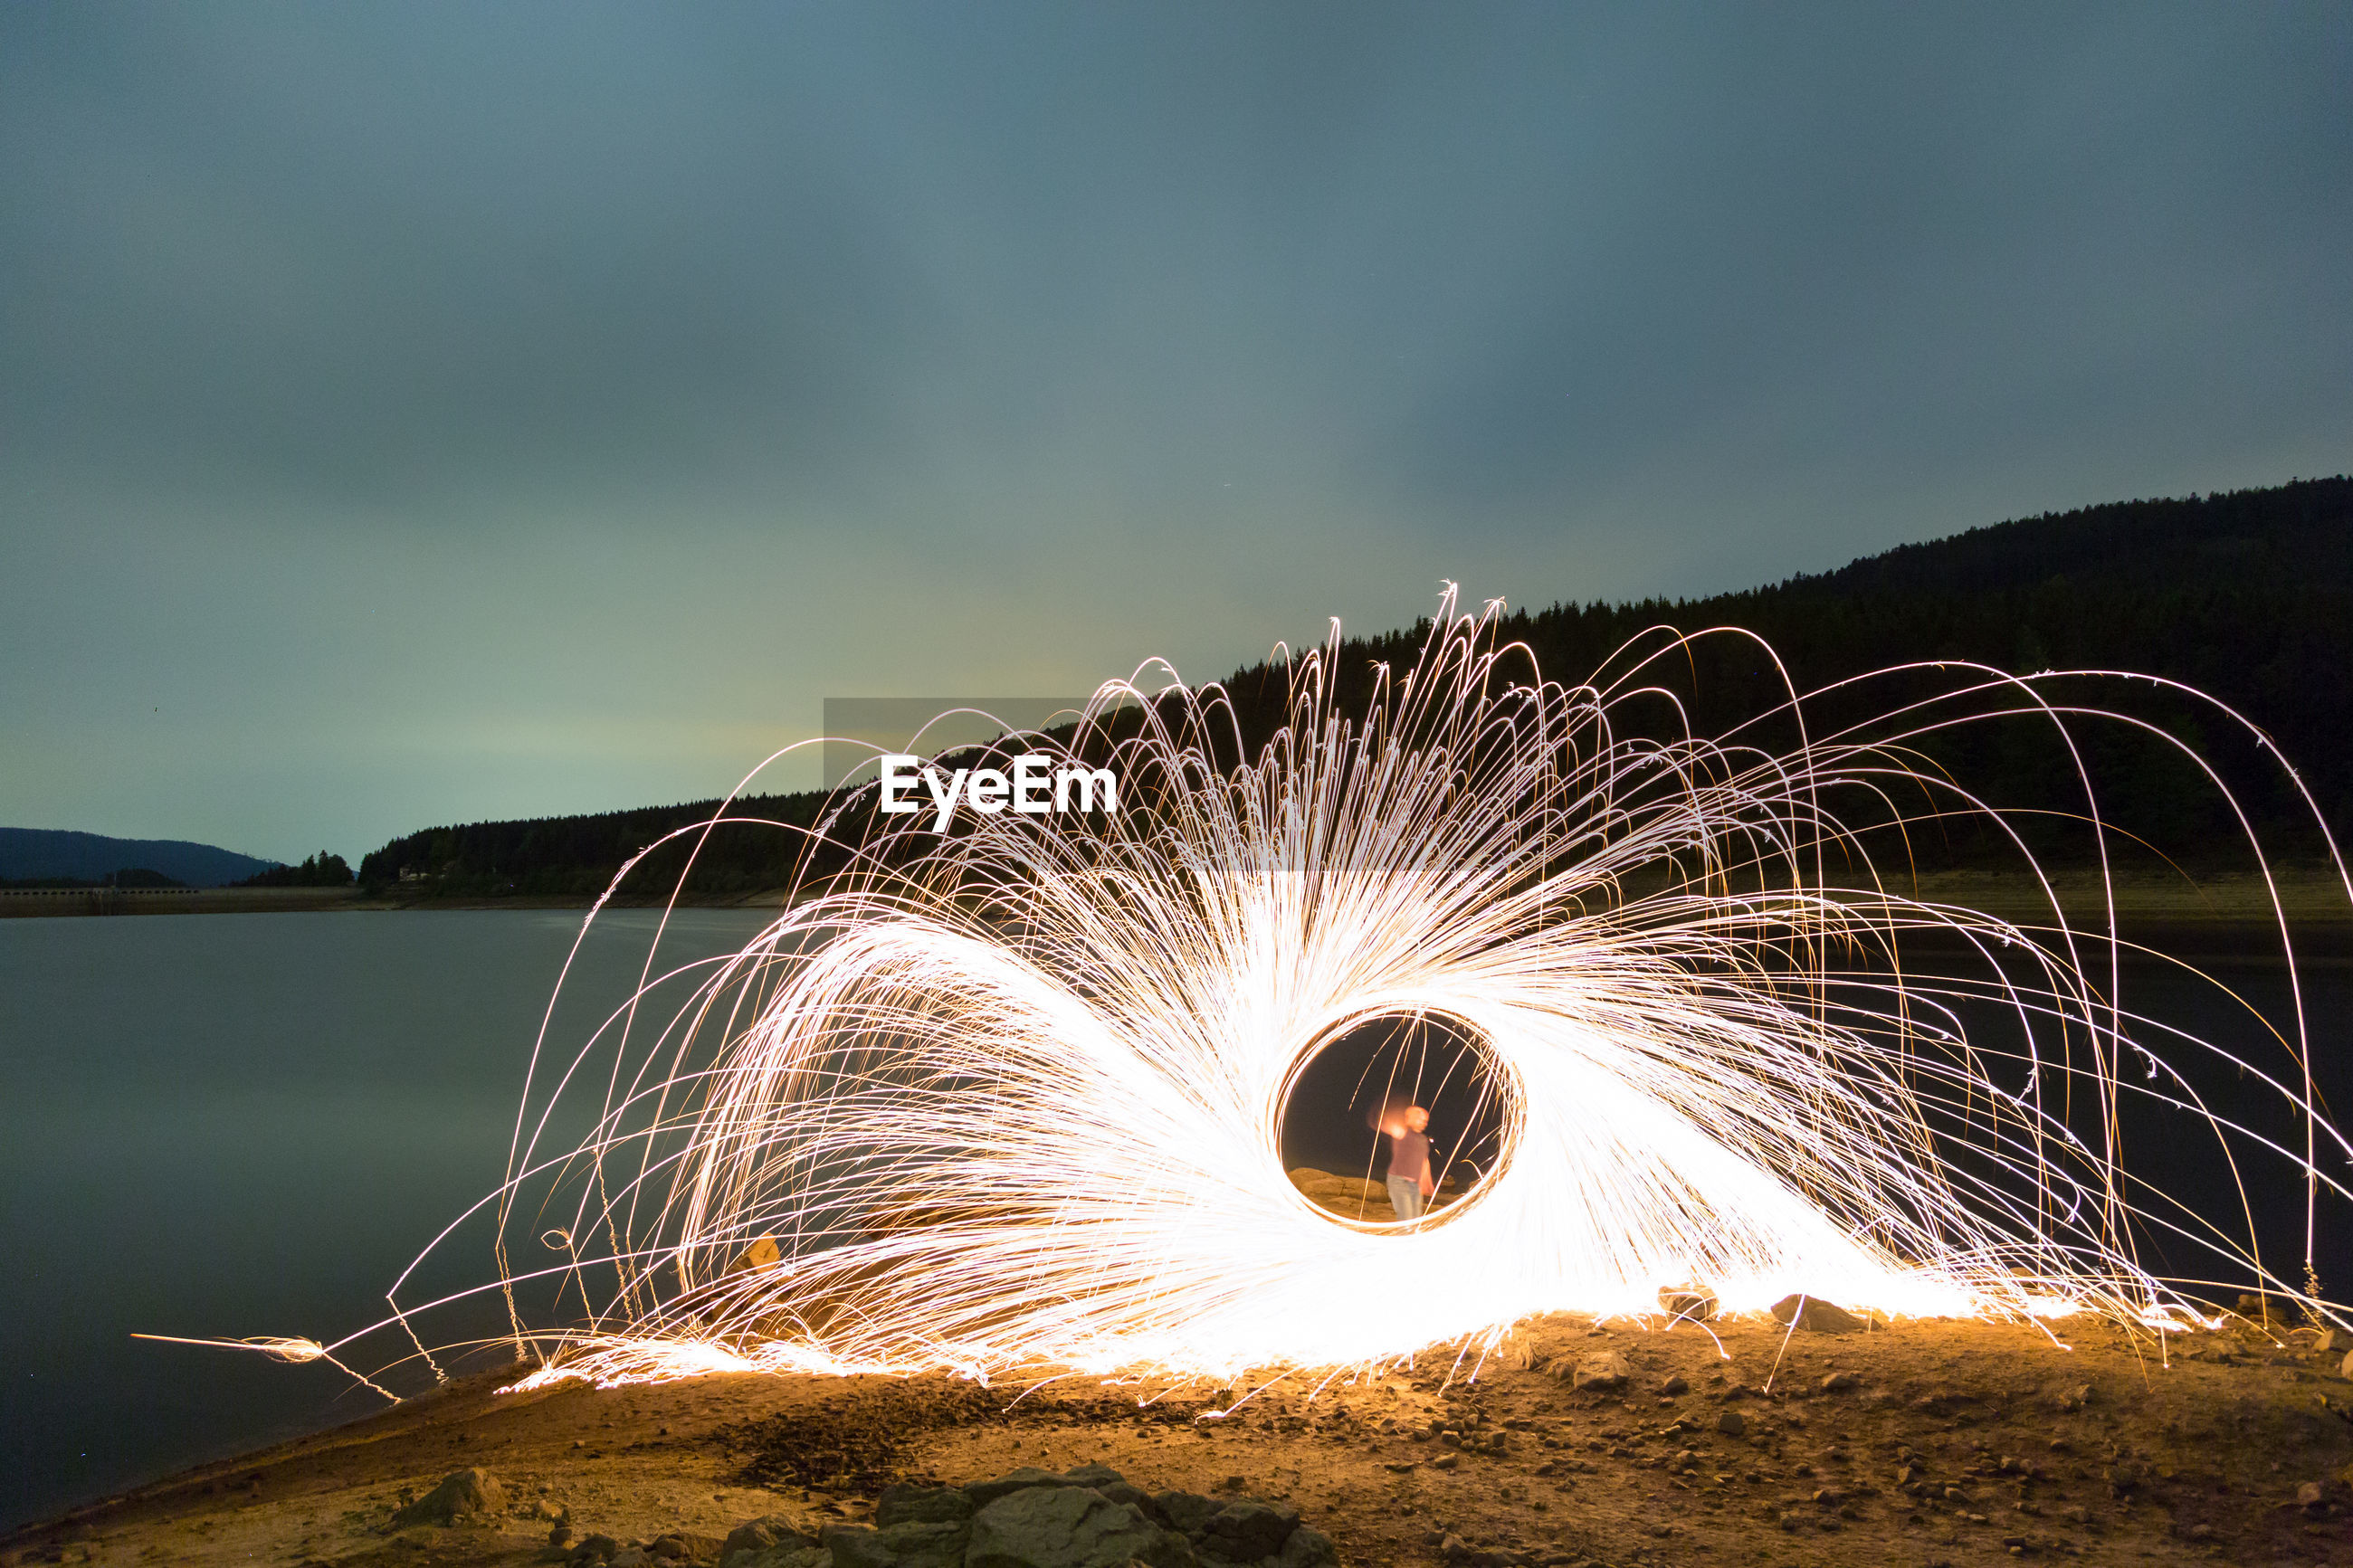 Man spinning illuminated wire wool by lake against sky at night